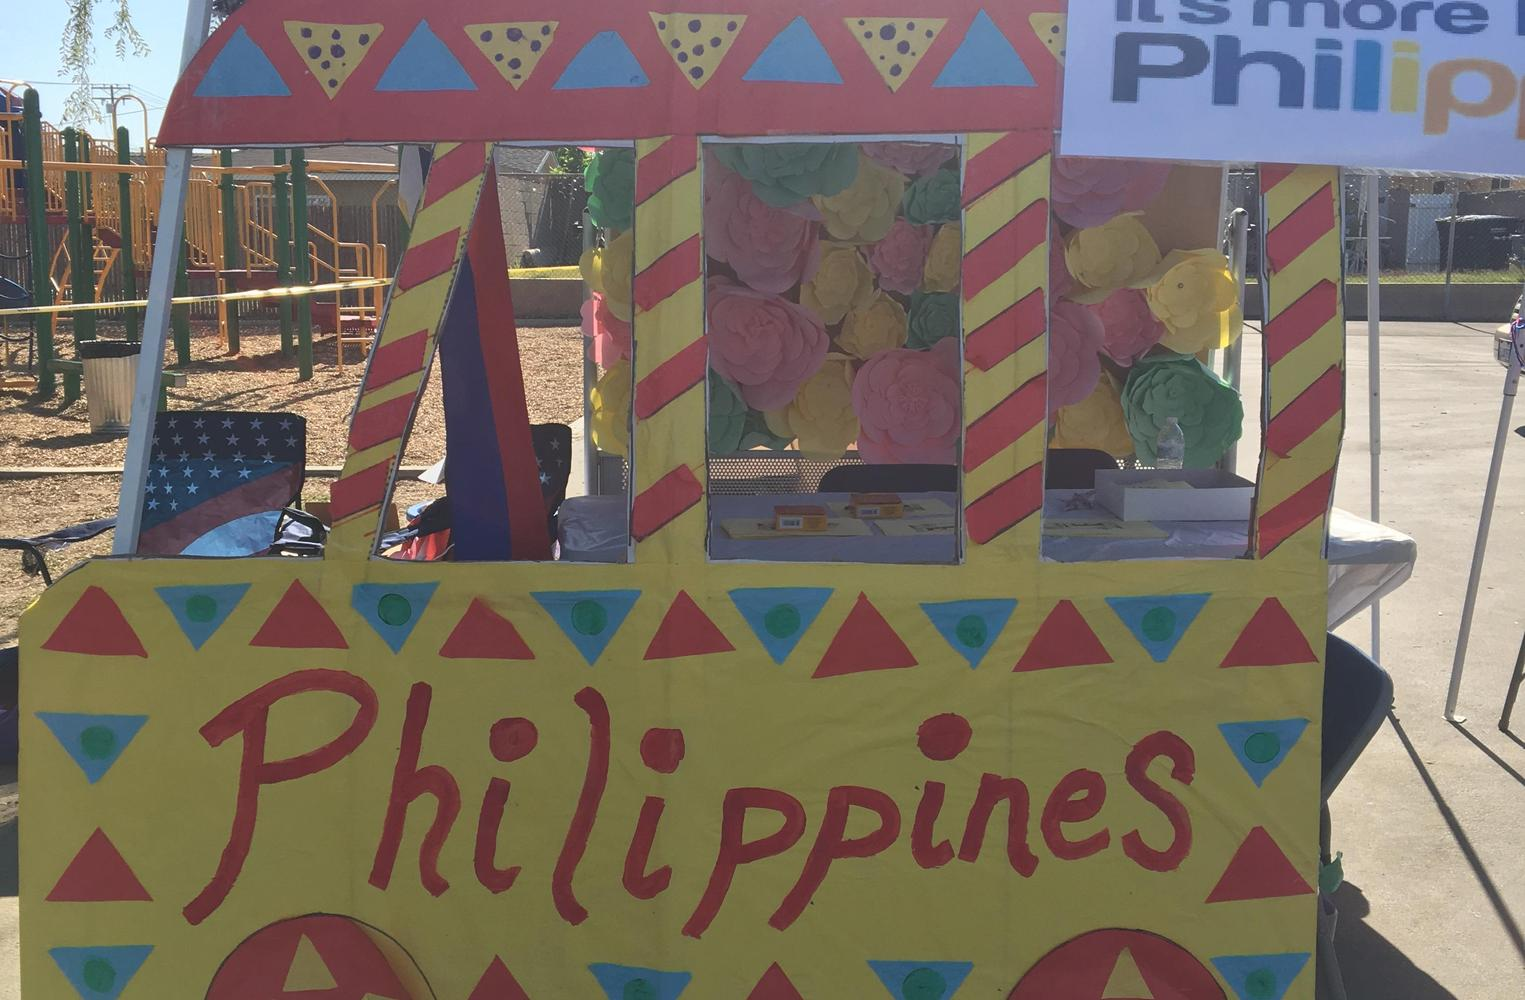 Philipines paper food truck